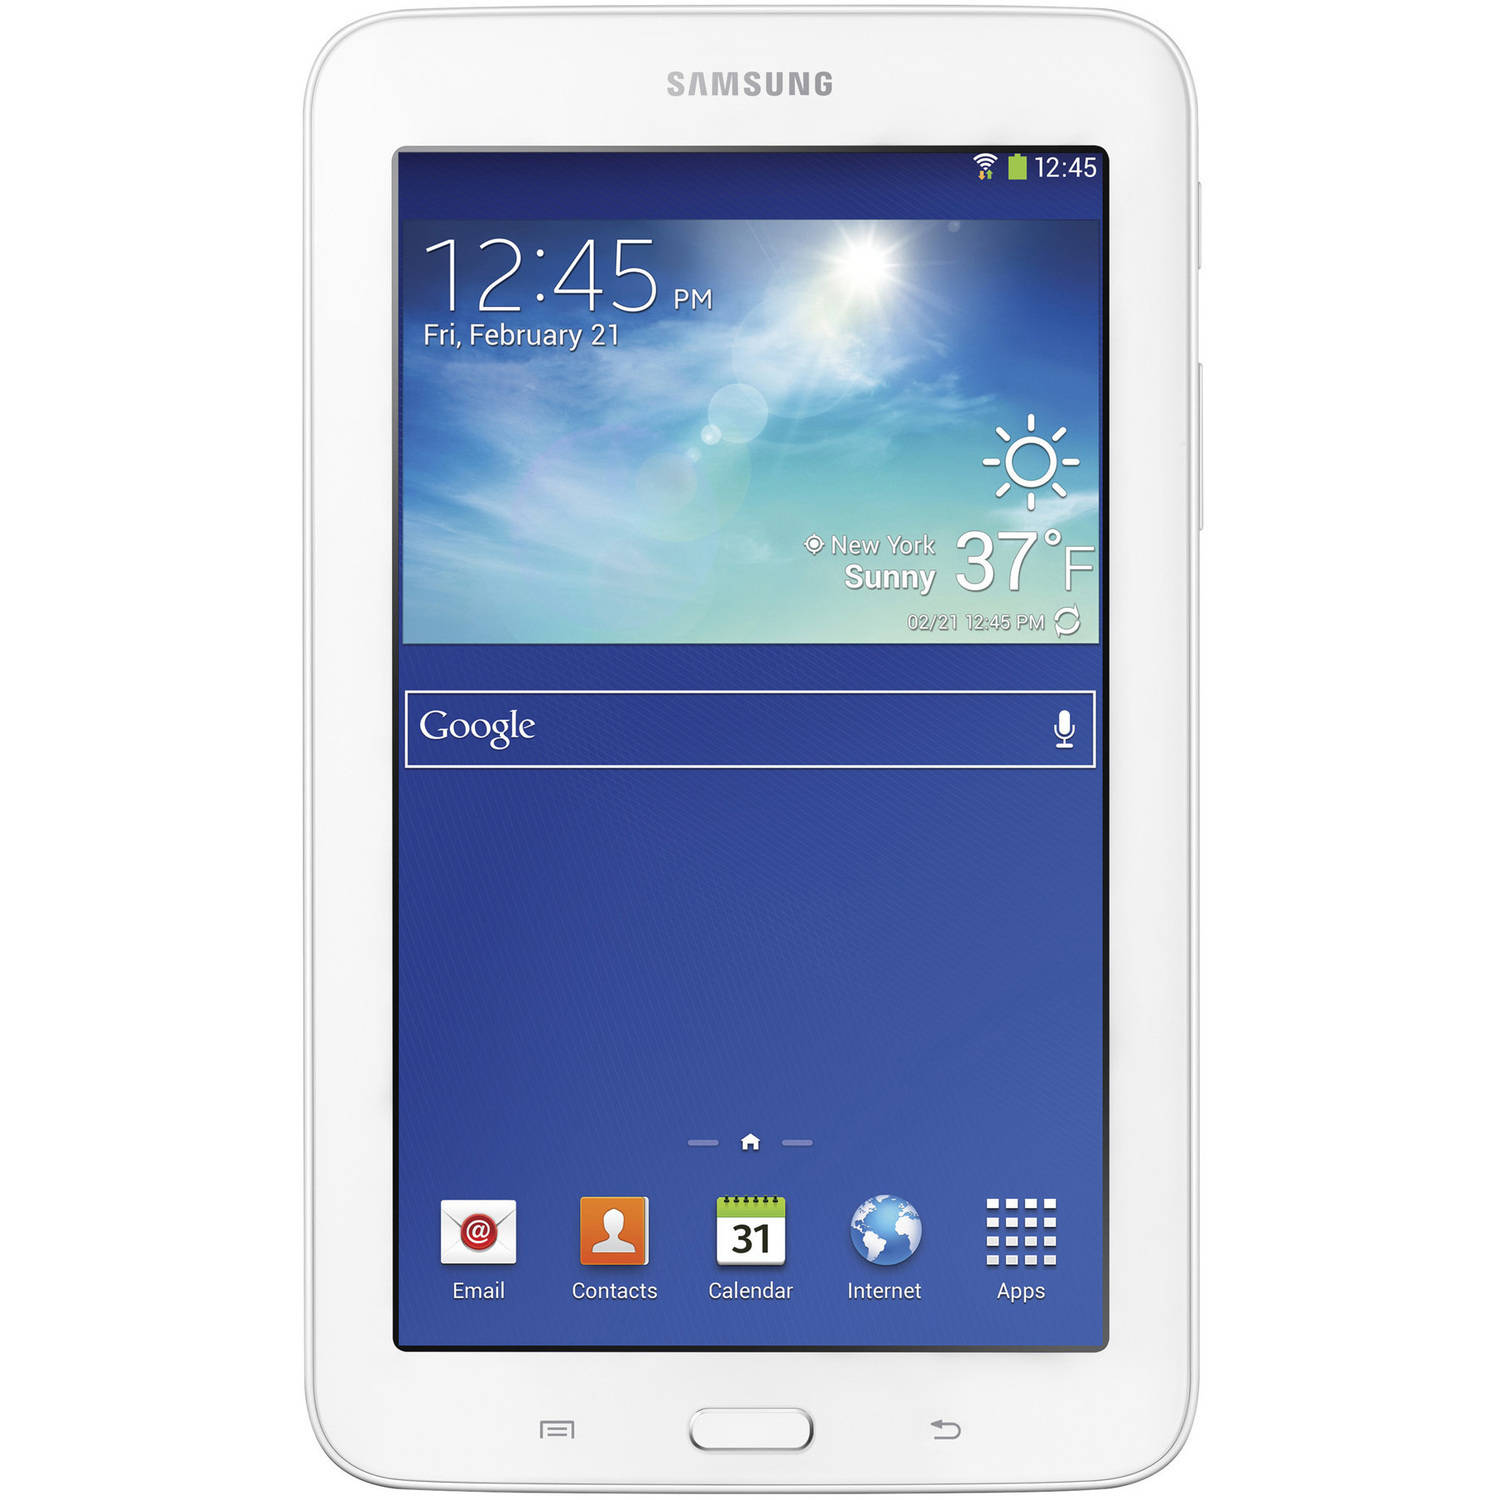 "Refurbished Samsung Galaxy Tab 3 Lite with WiFi 7.0"" Touchscreen Tablet PC Featuring Android 4.2 (Jelly Bean) Operating System, White"